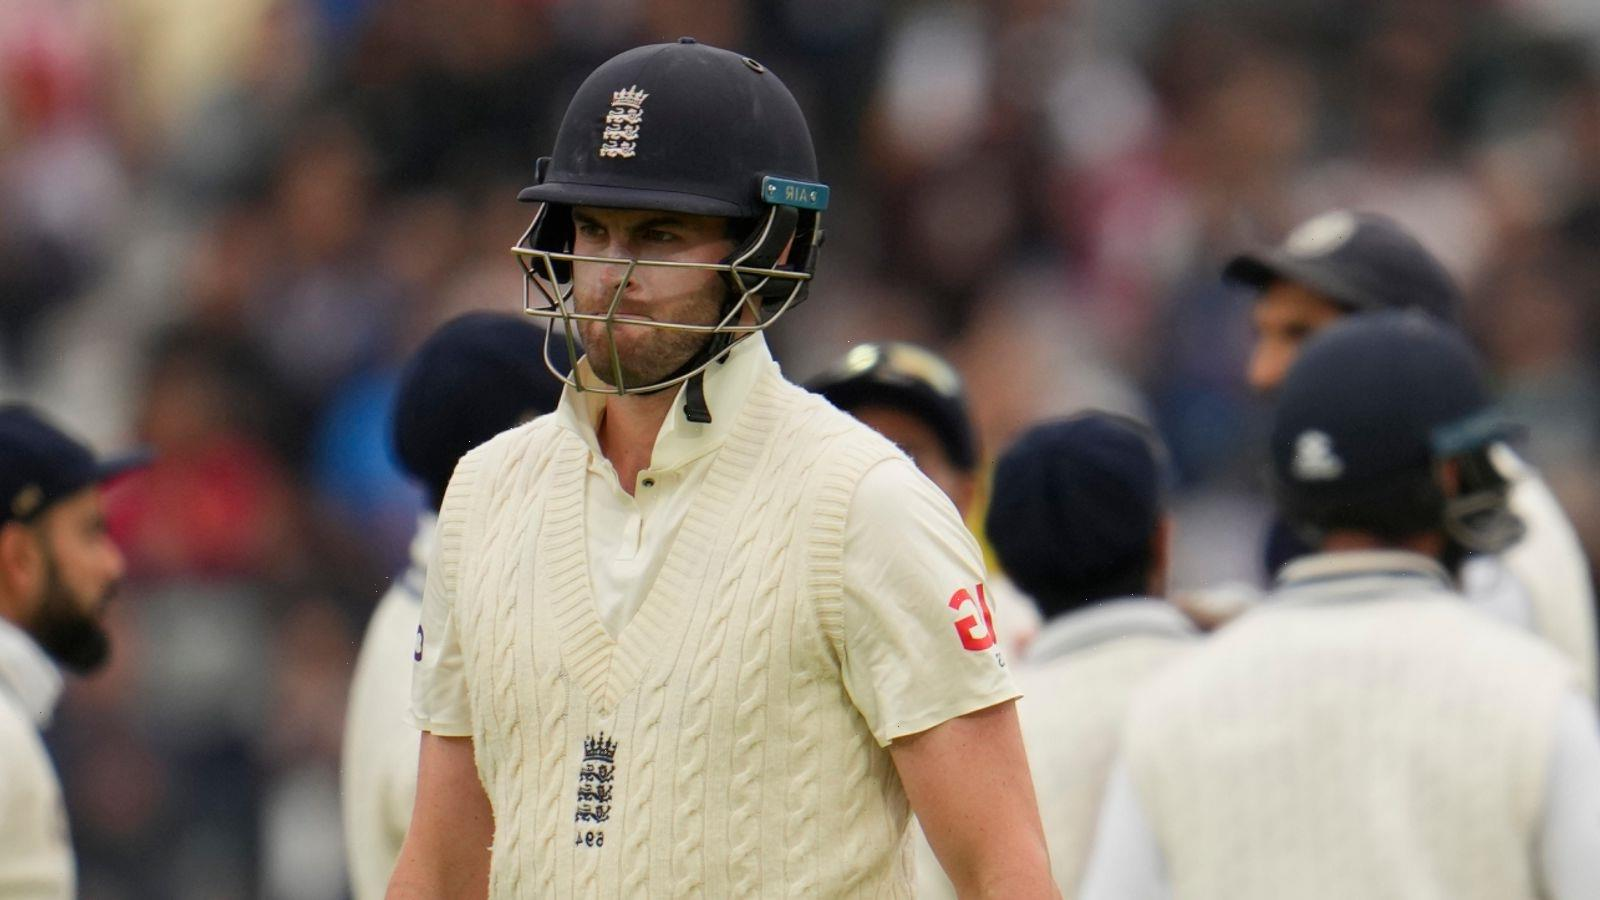 England cannot paper over cracks in batting line-up anymore after Lords defeat, says Sir Andrew Strauss